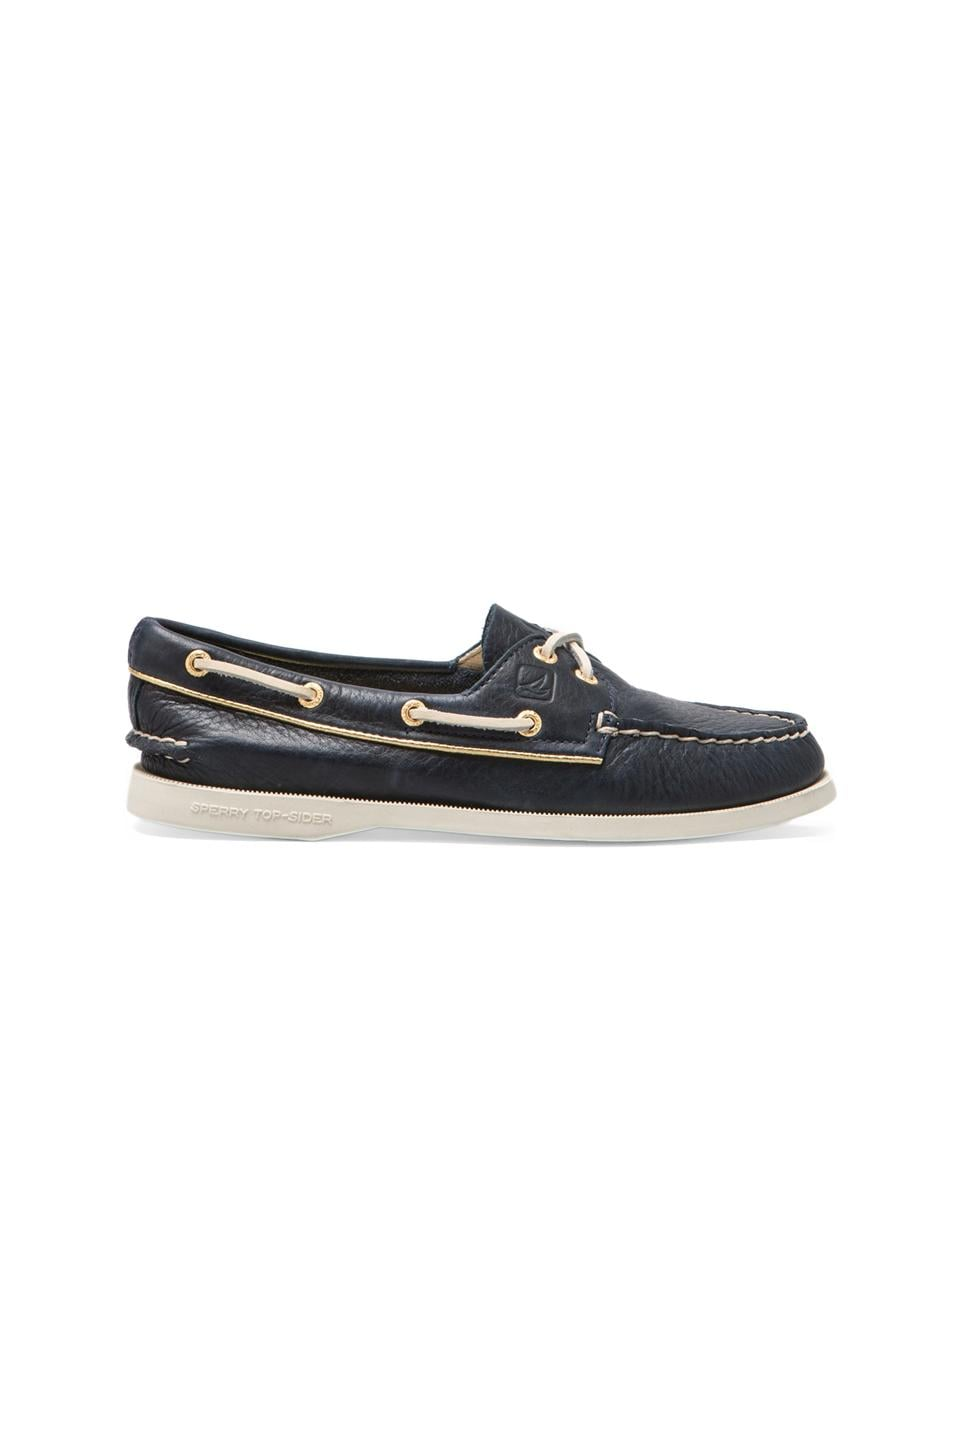 Sperry Top-Sider A/O 2-Eye in Navy/Gold